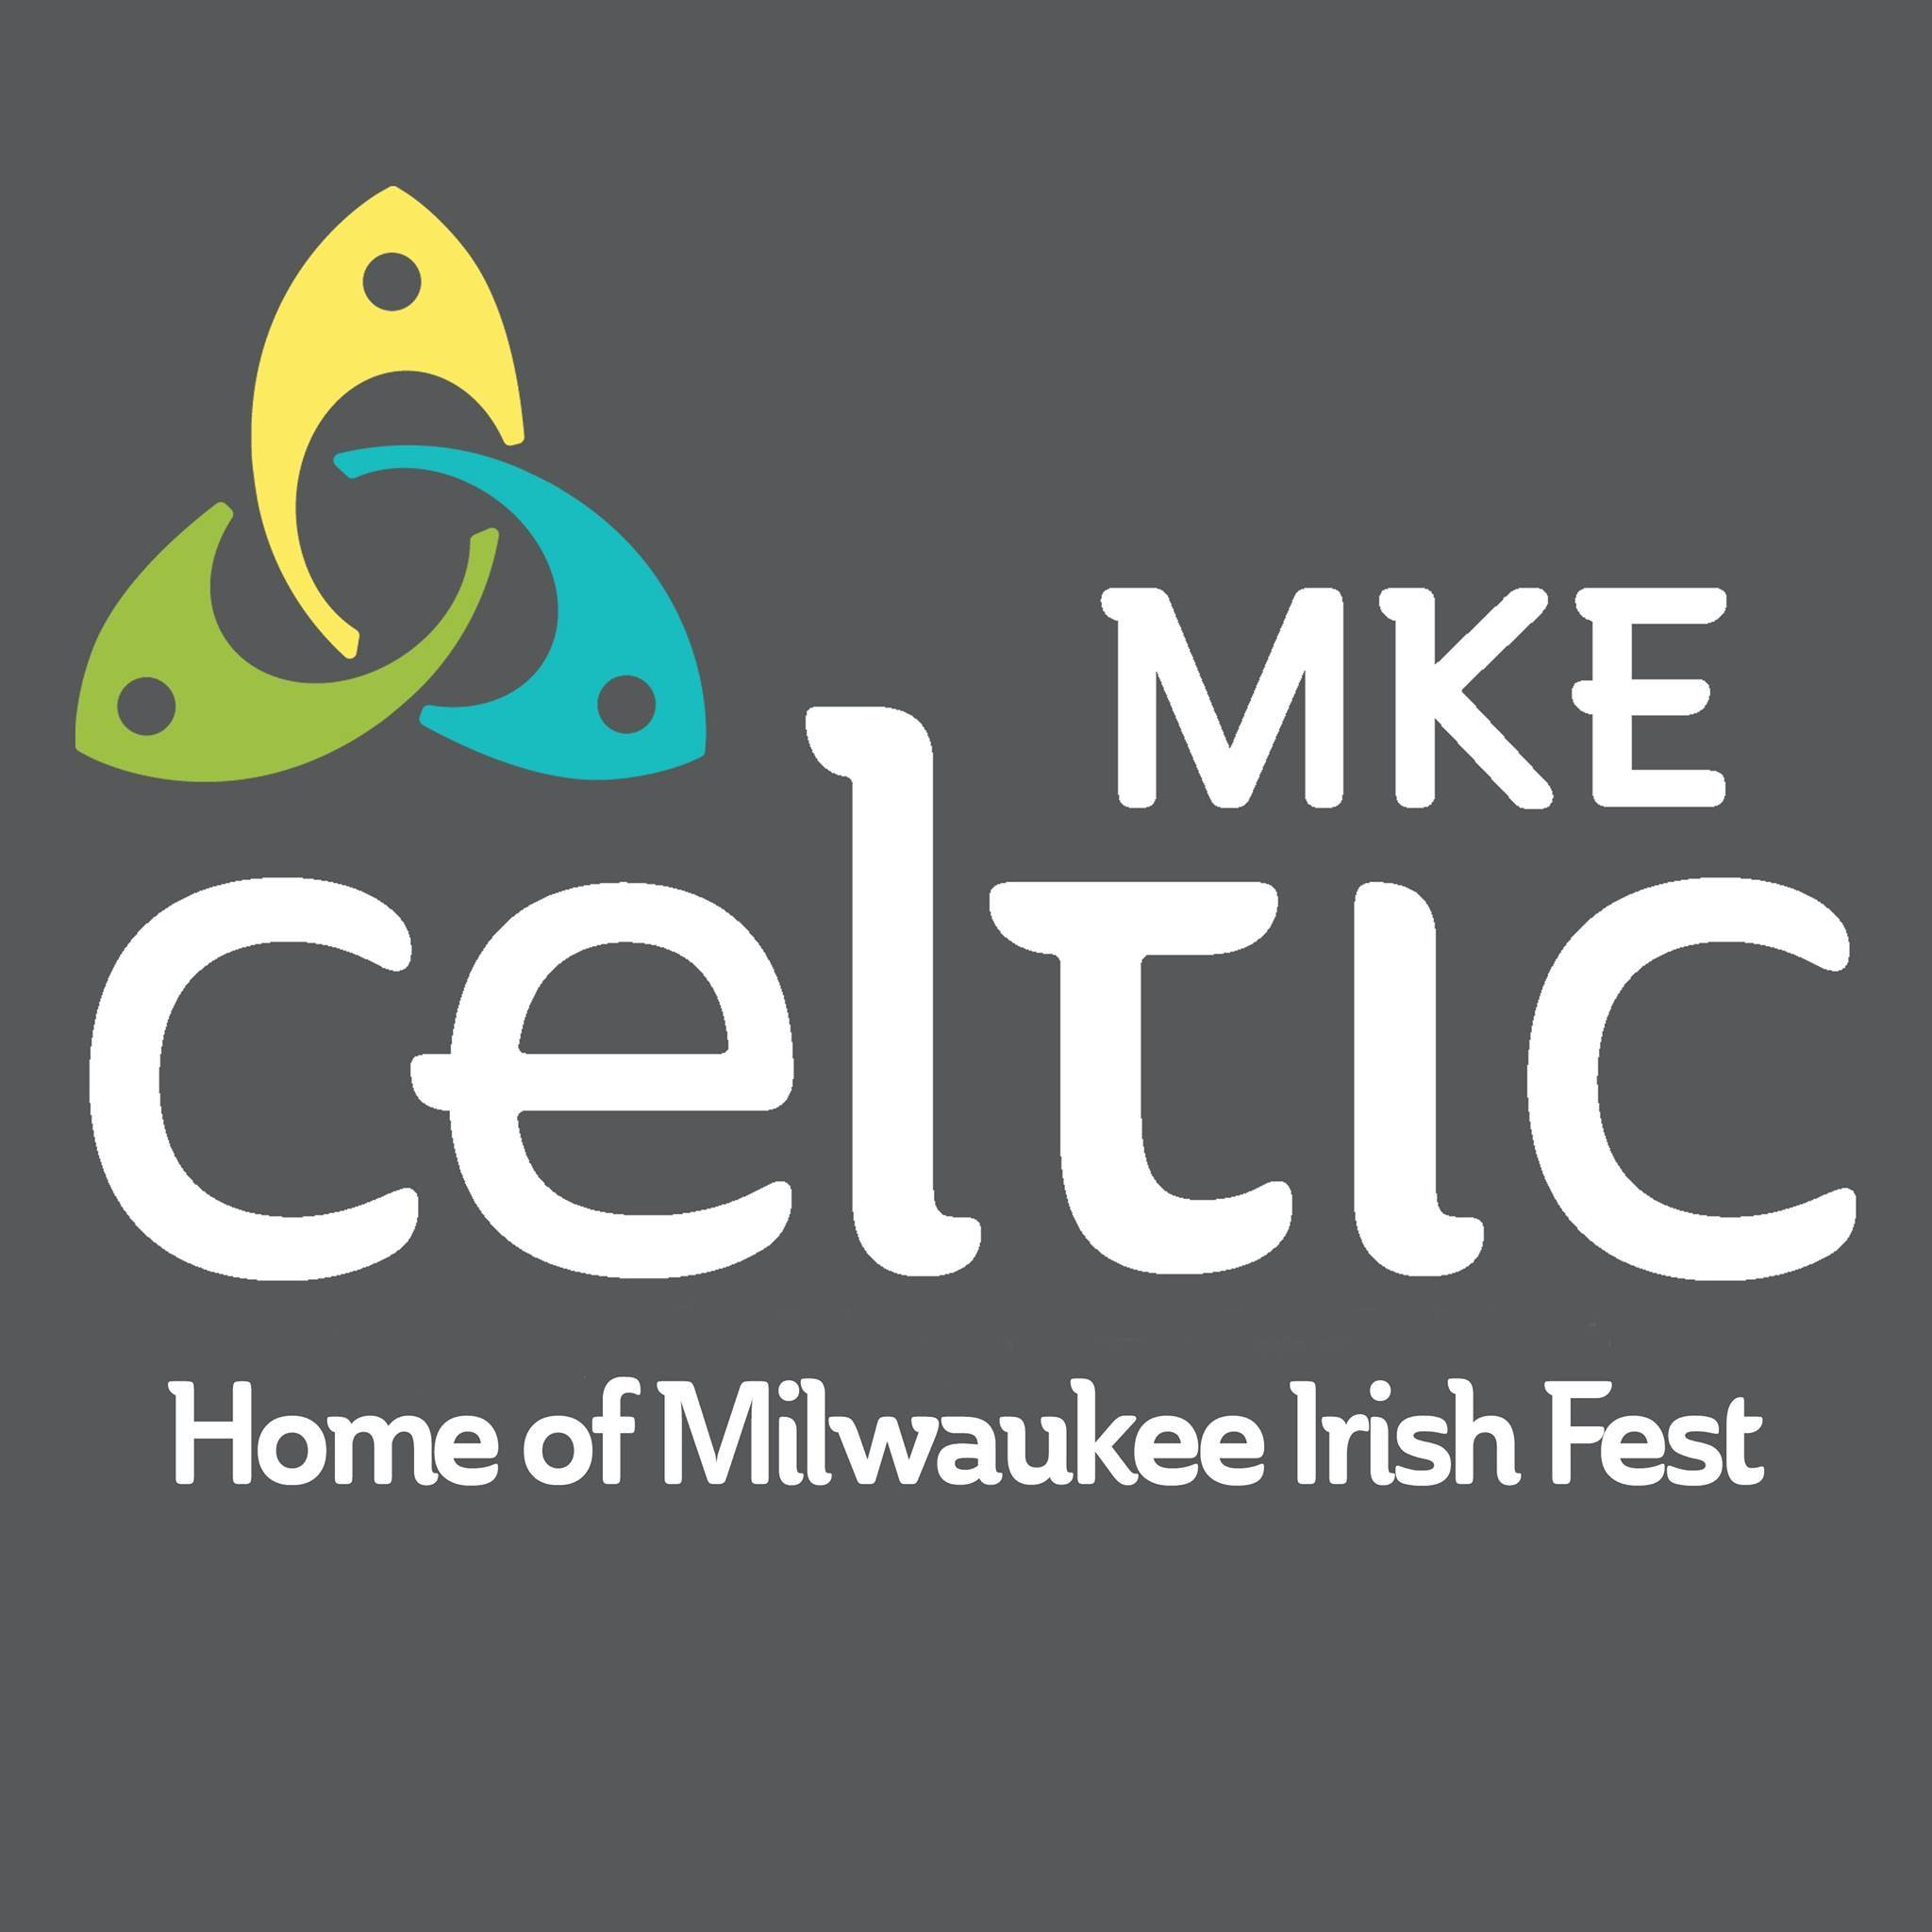 CelticMKE Symposium to Showcase the Connections Between African and Irish American Experiences